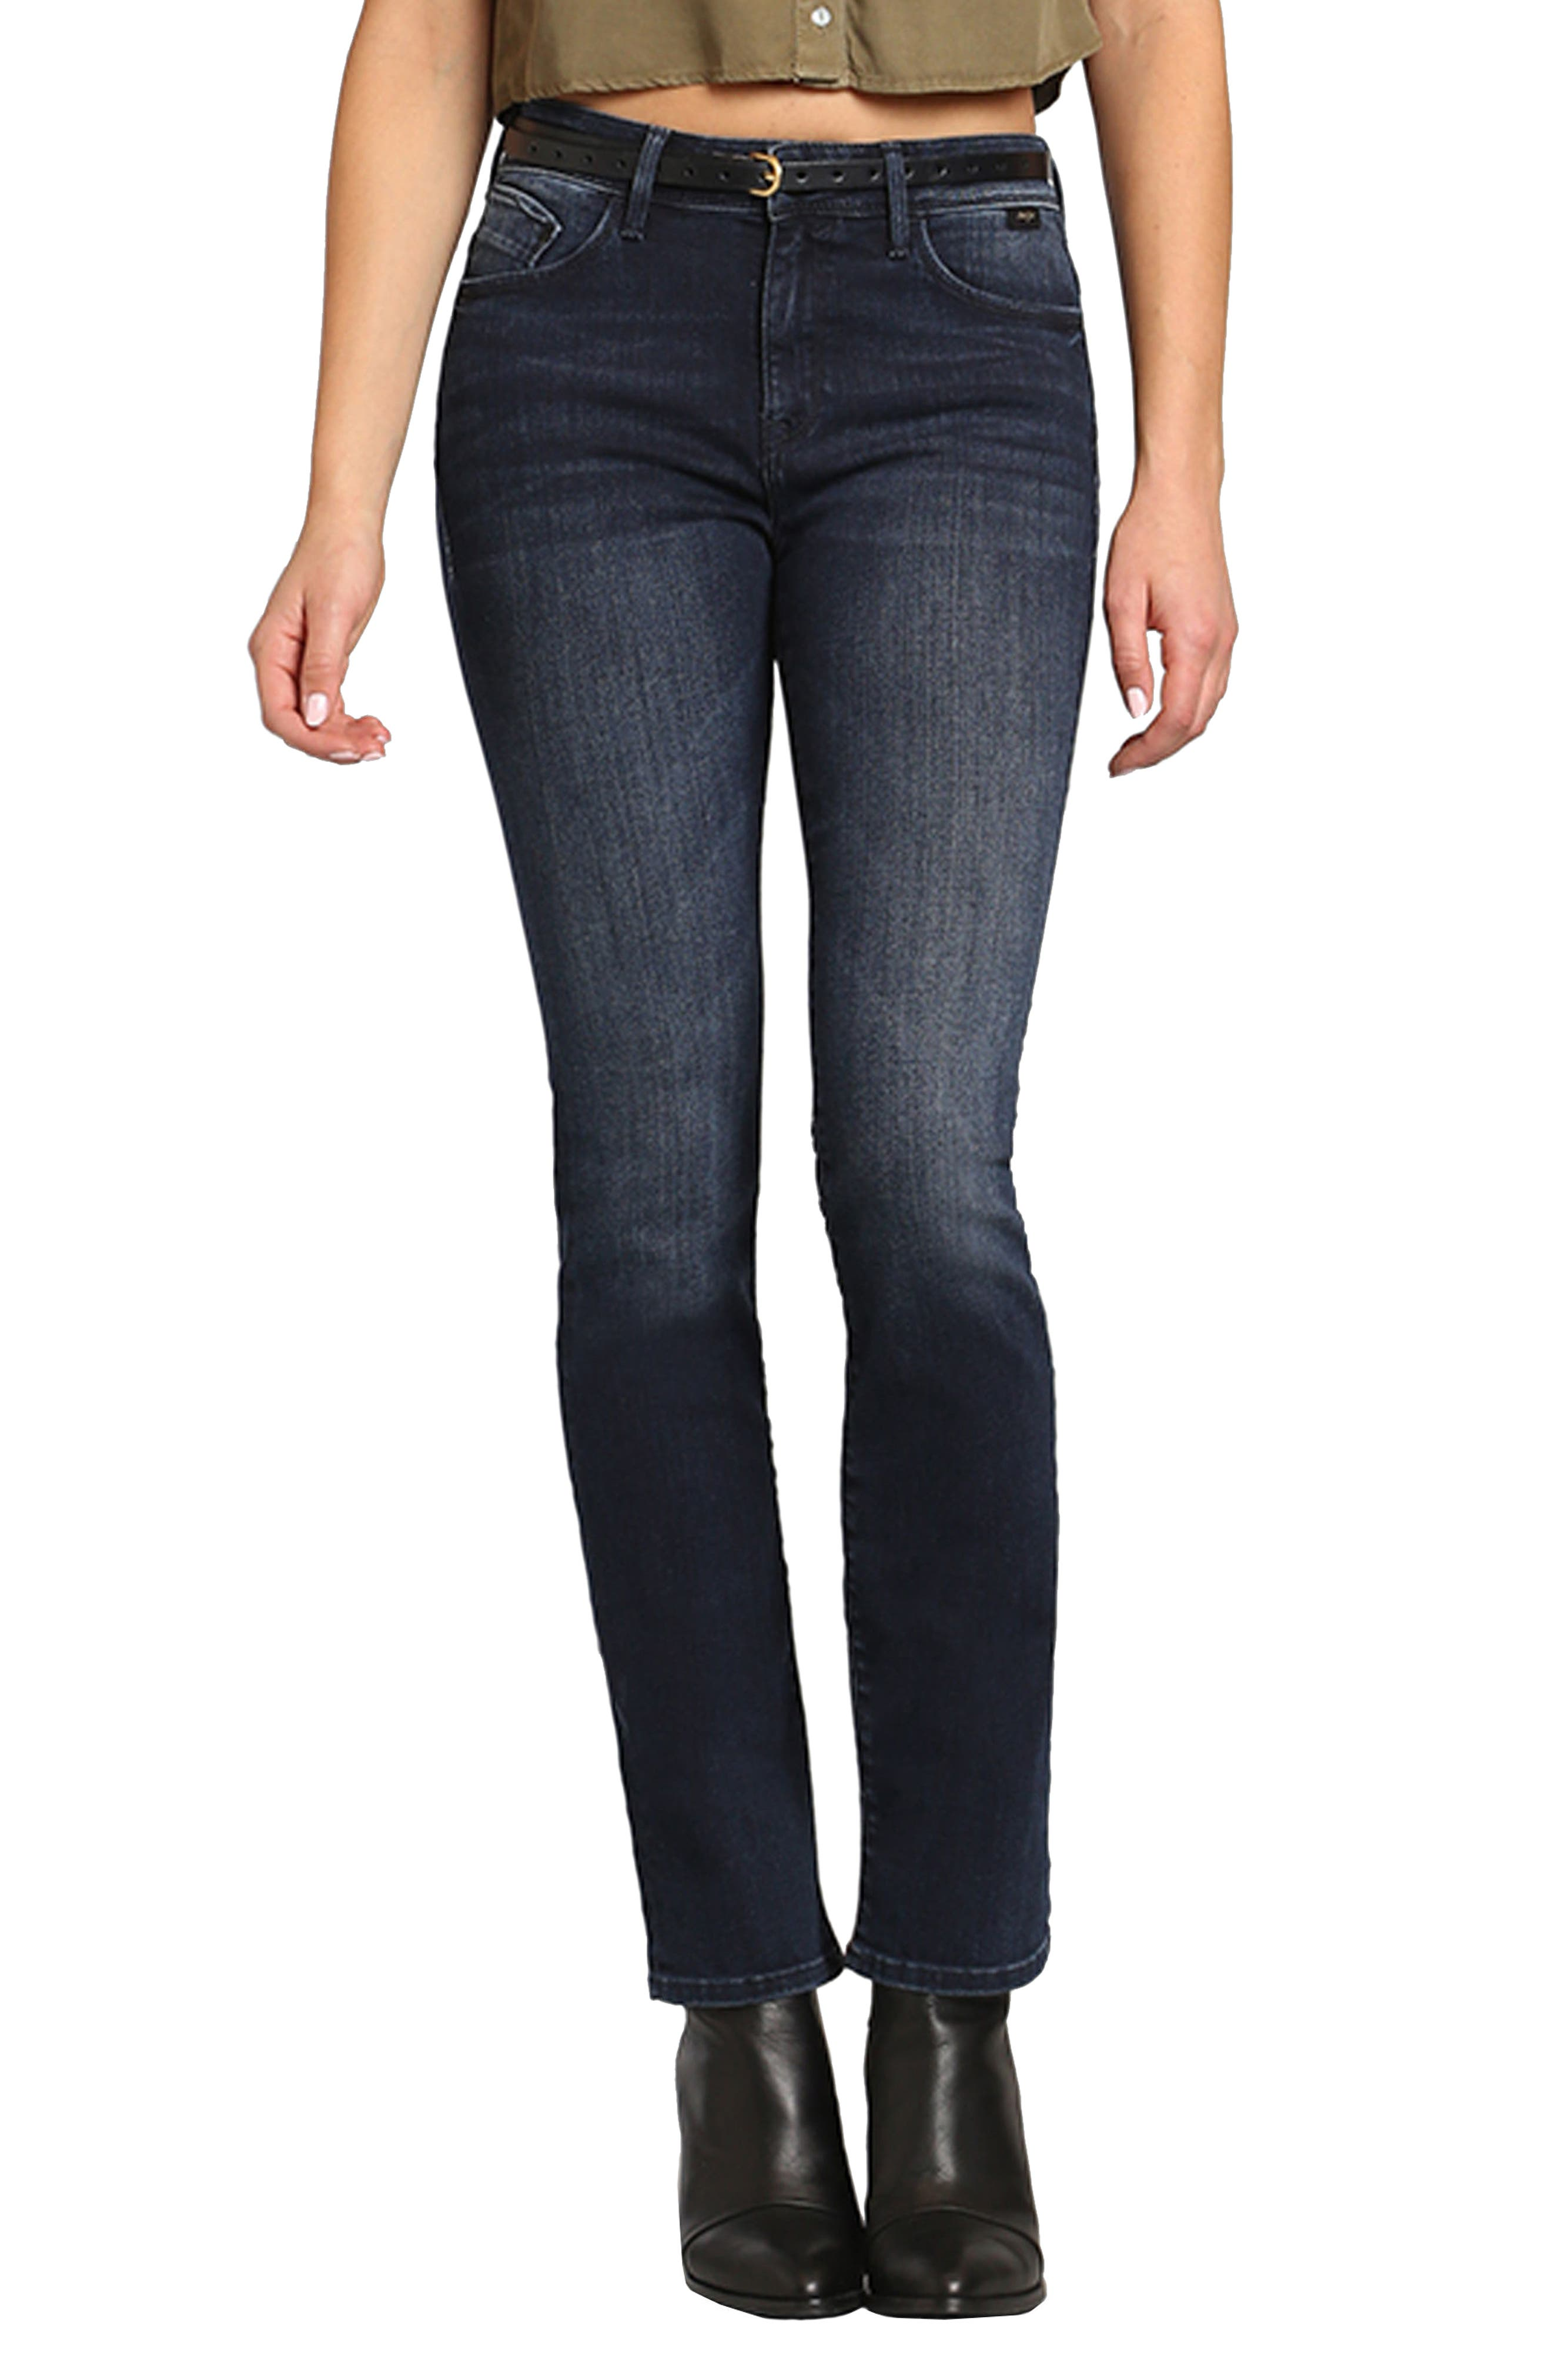 Kendra High Waist Straight Jeans,                         Main,                         color,